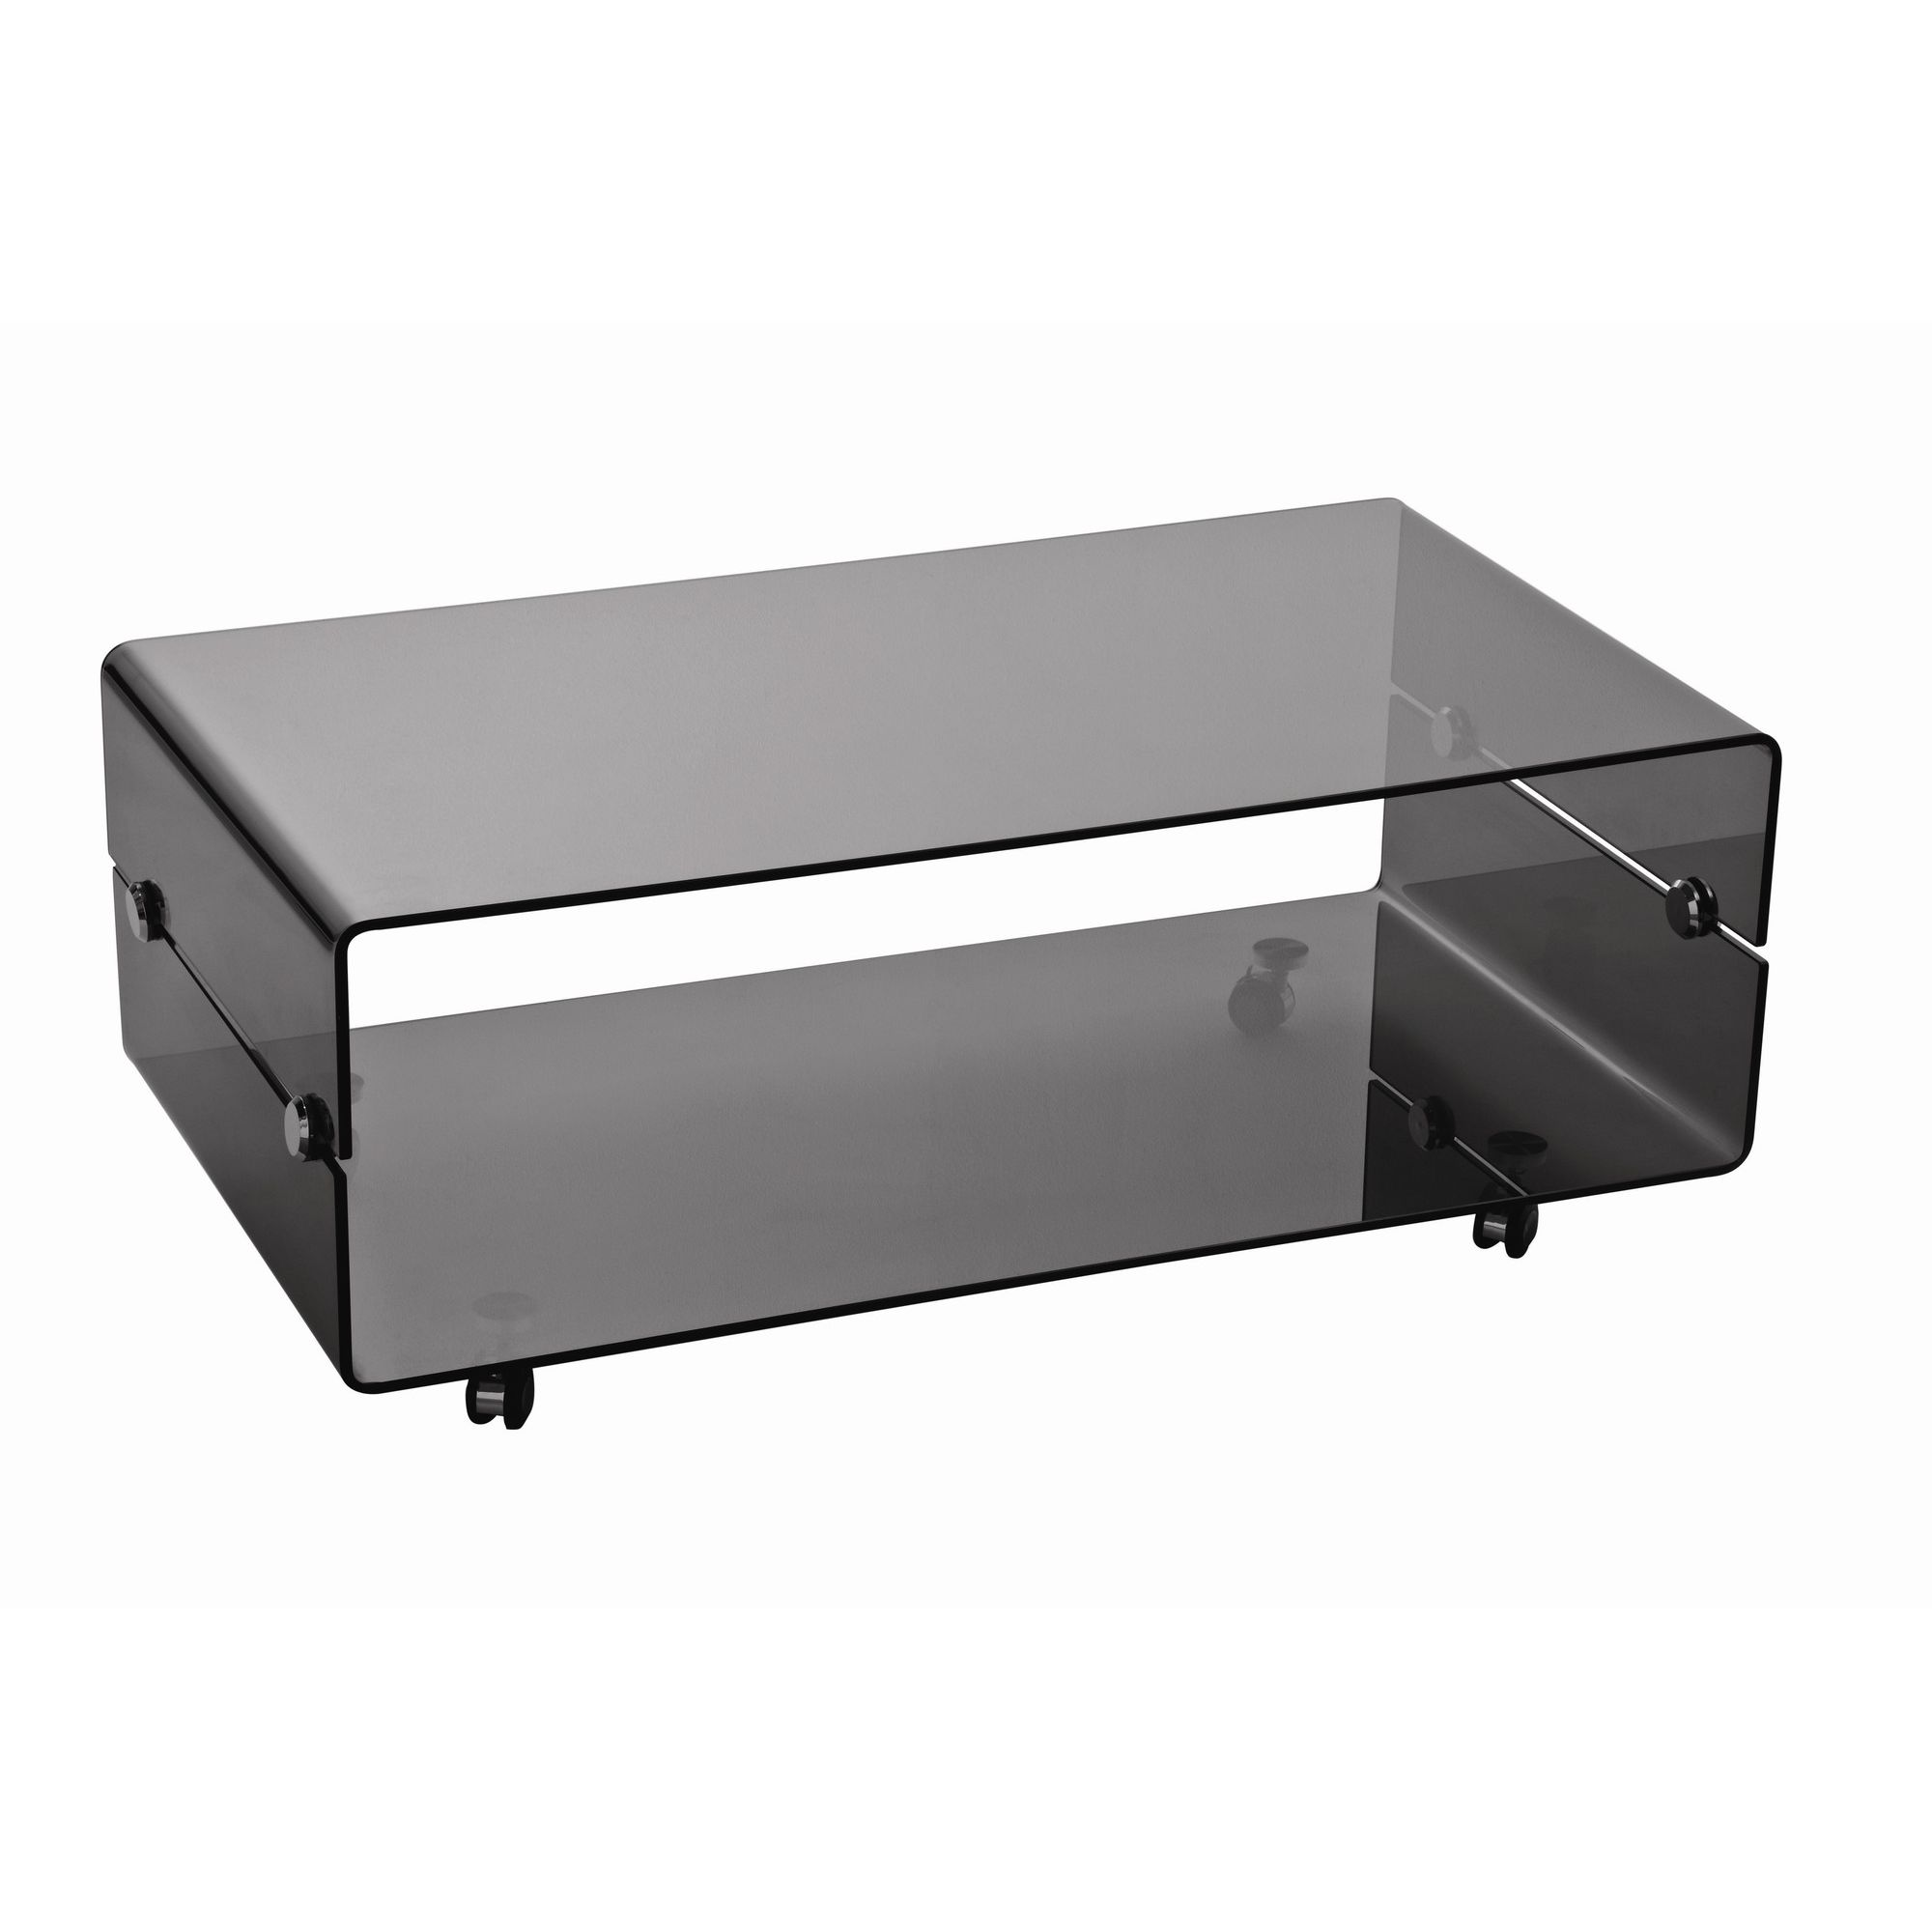 Premier Housewares Two Tier Coffee Table with Wheels at Tesco Direct